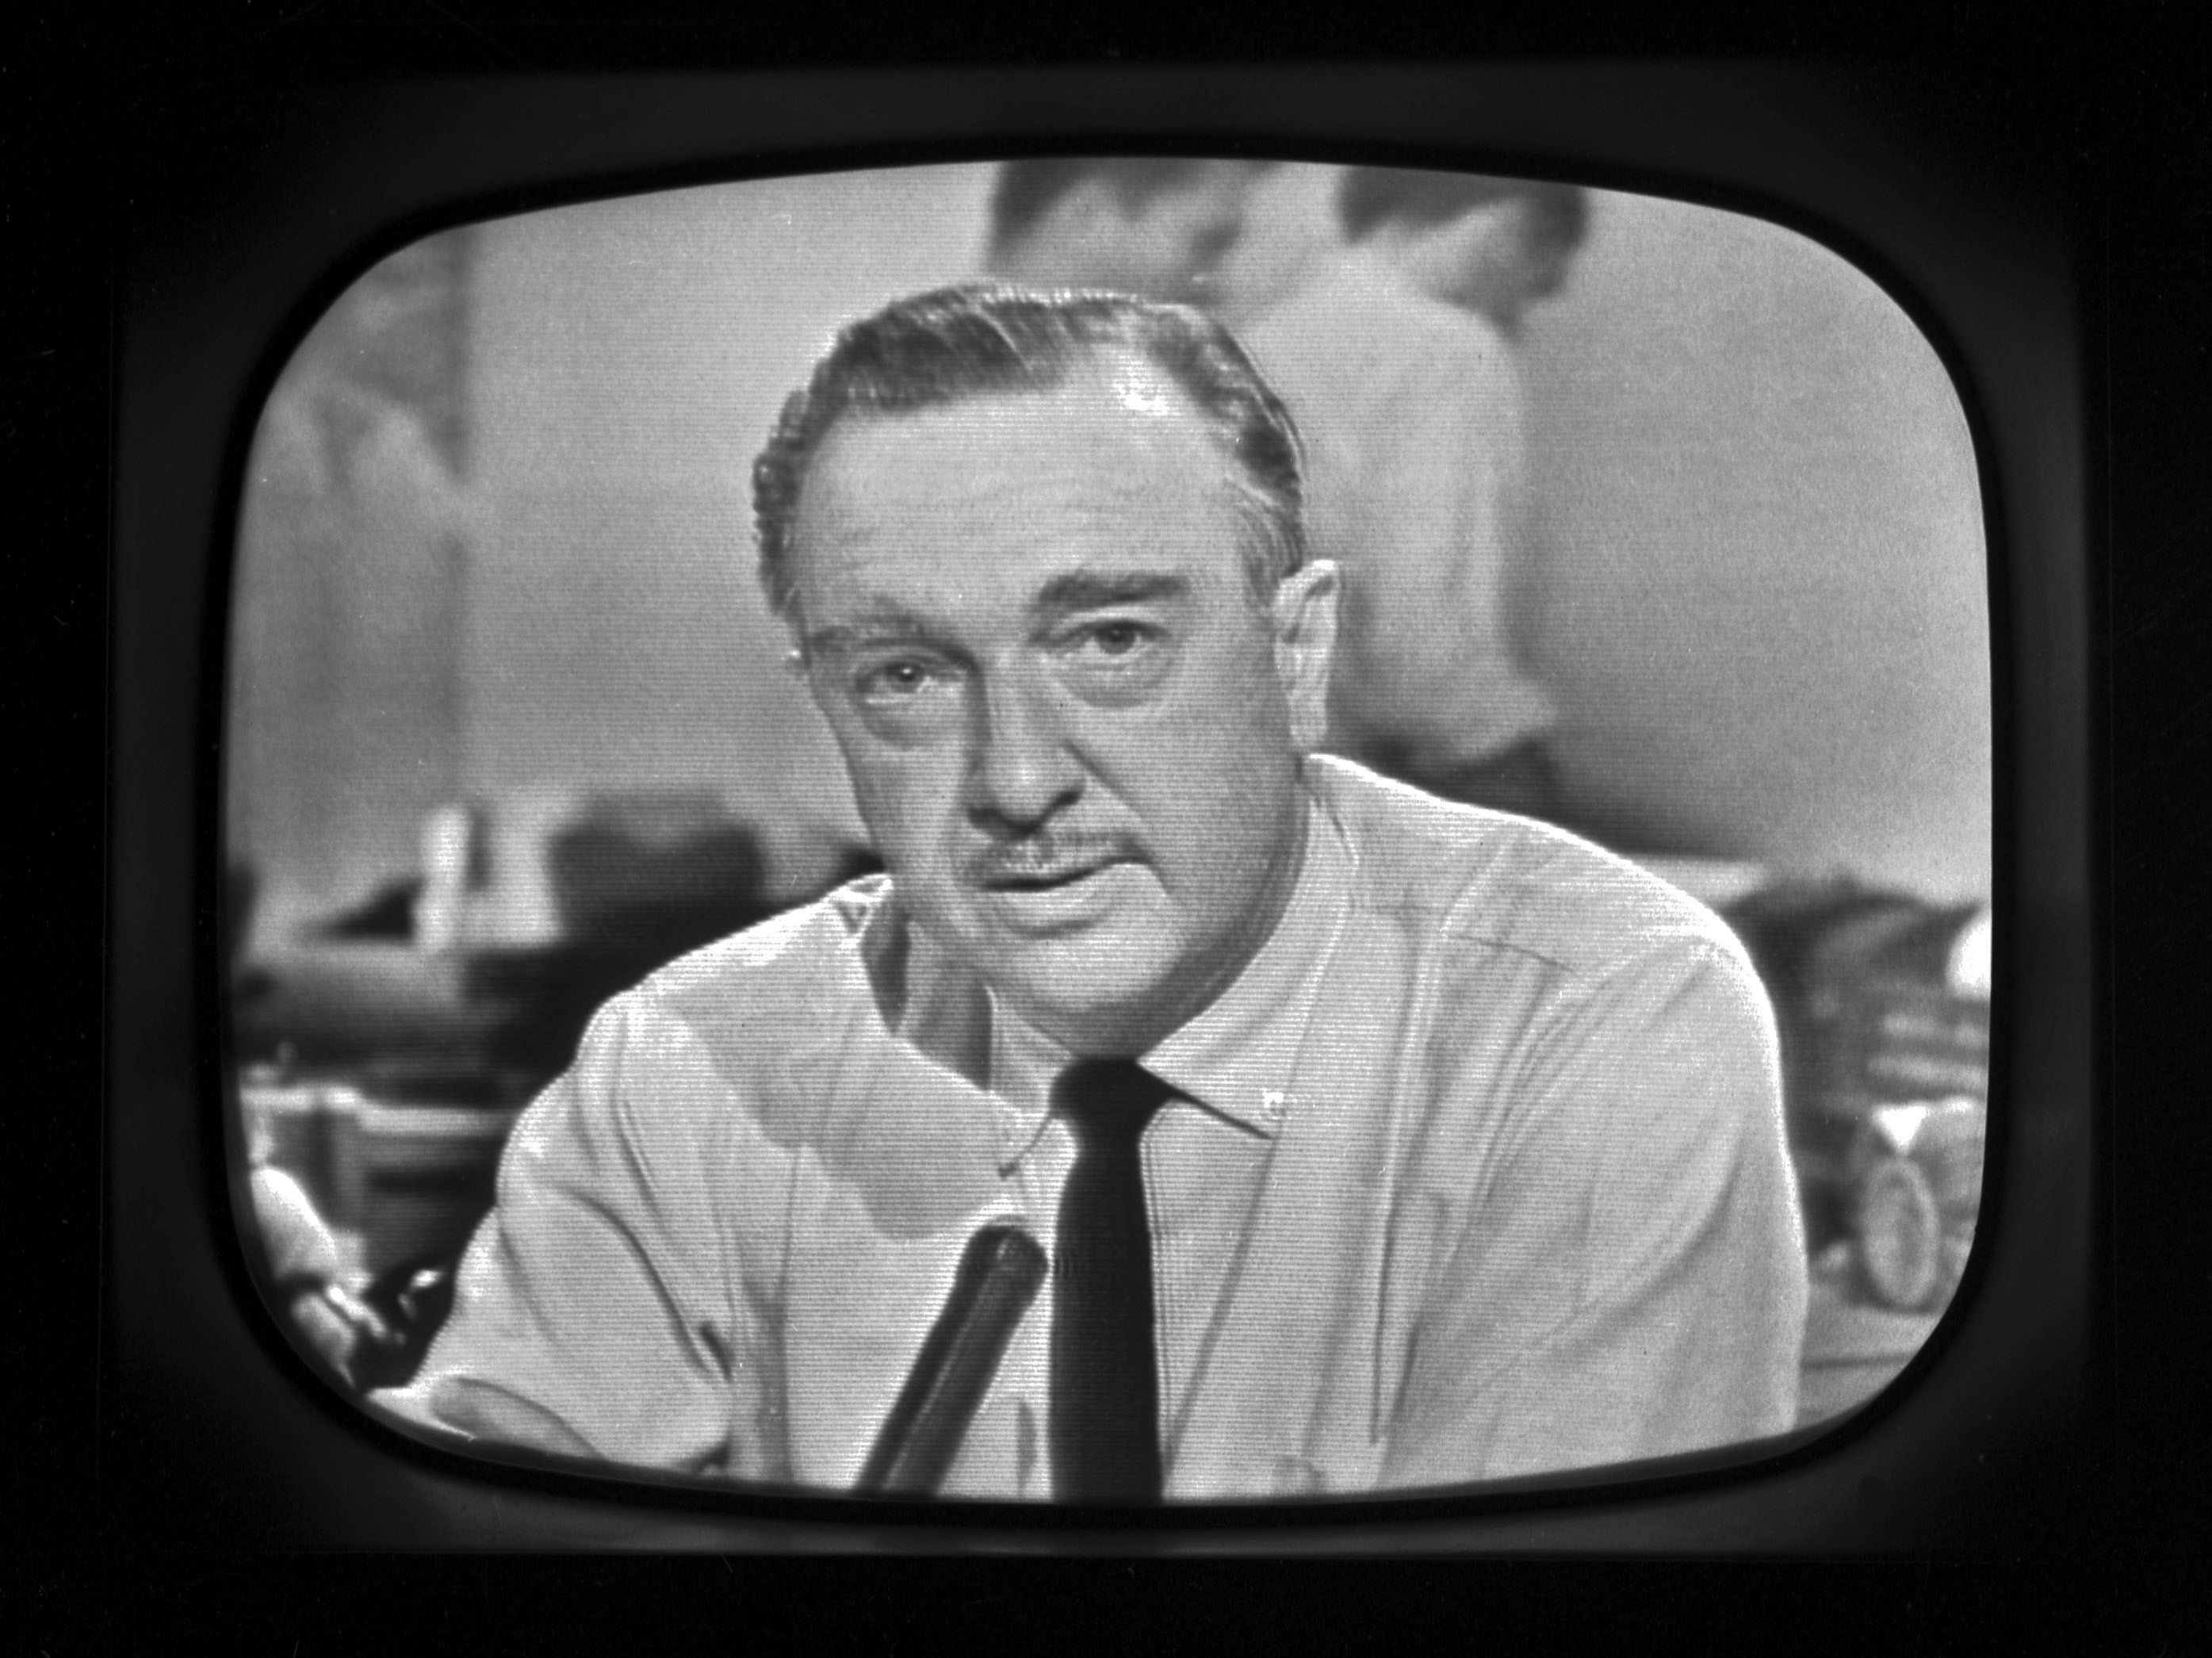 CBS News anchor Walter Cronkite reports that President John F. Kennedy was assassinated in Dallas on Nov. 22, 1963.